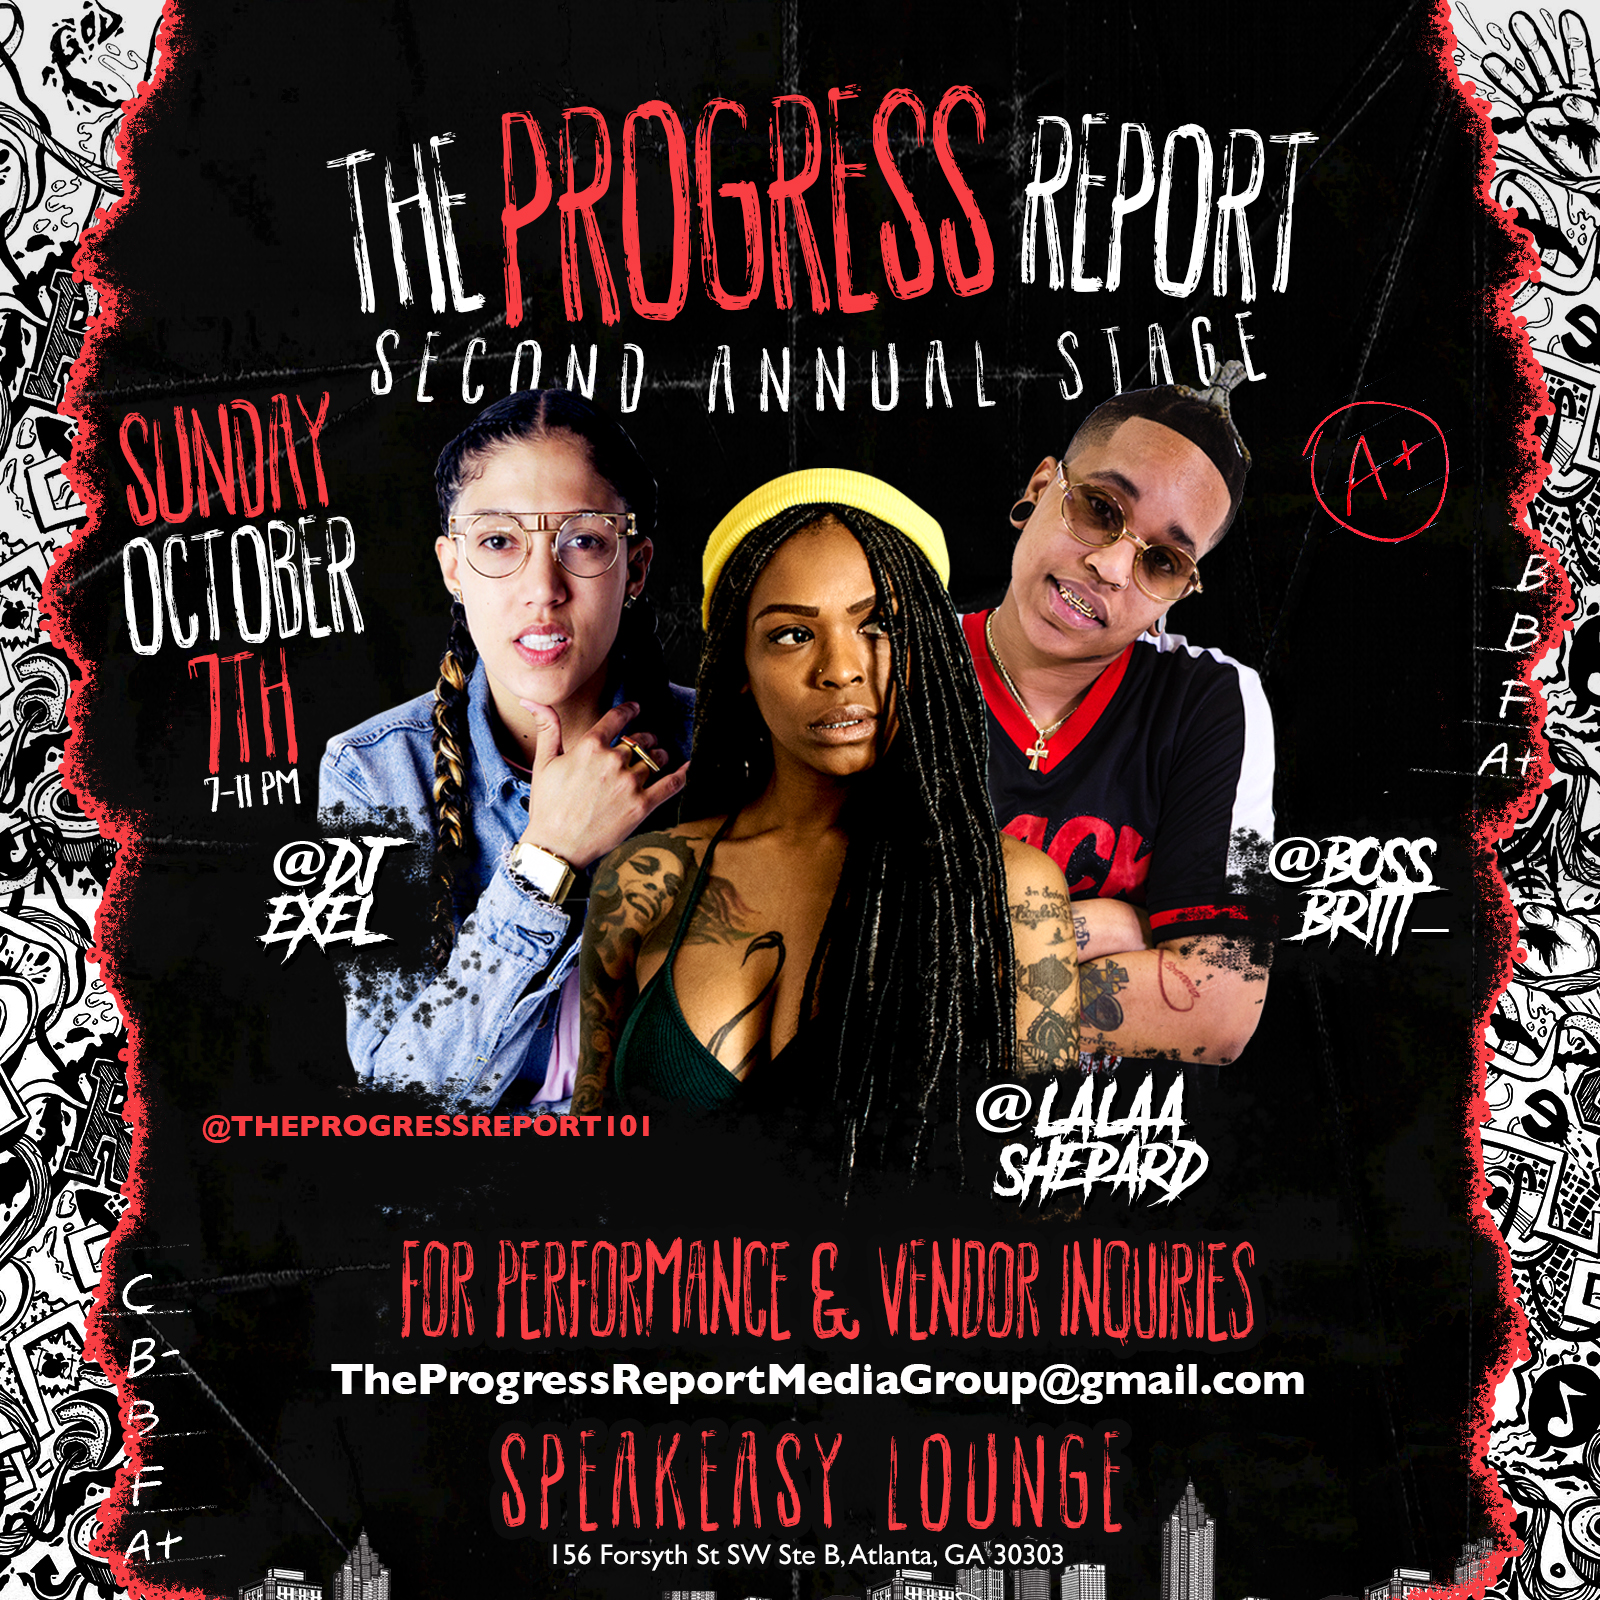 Perform A3C Weekend In ATL! [The Progress Report 2nd Annual Showcase] Sunday, October 7th